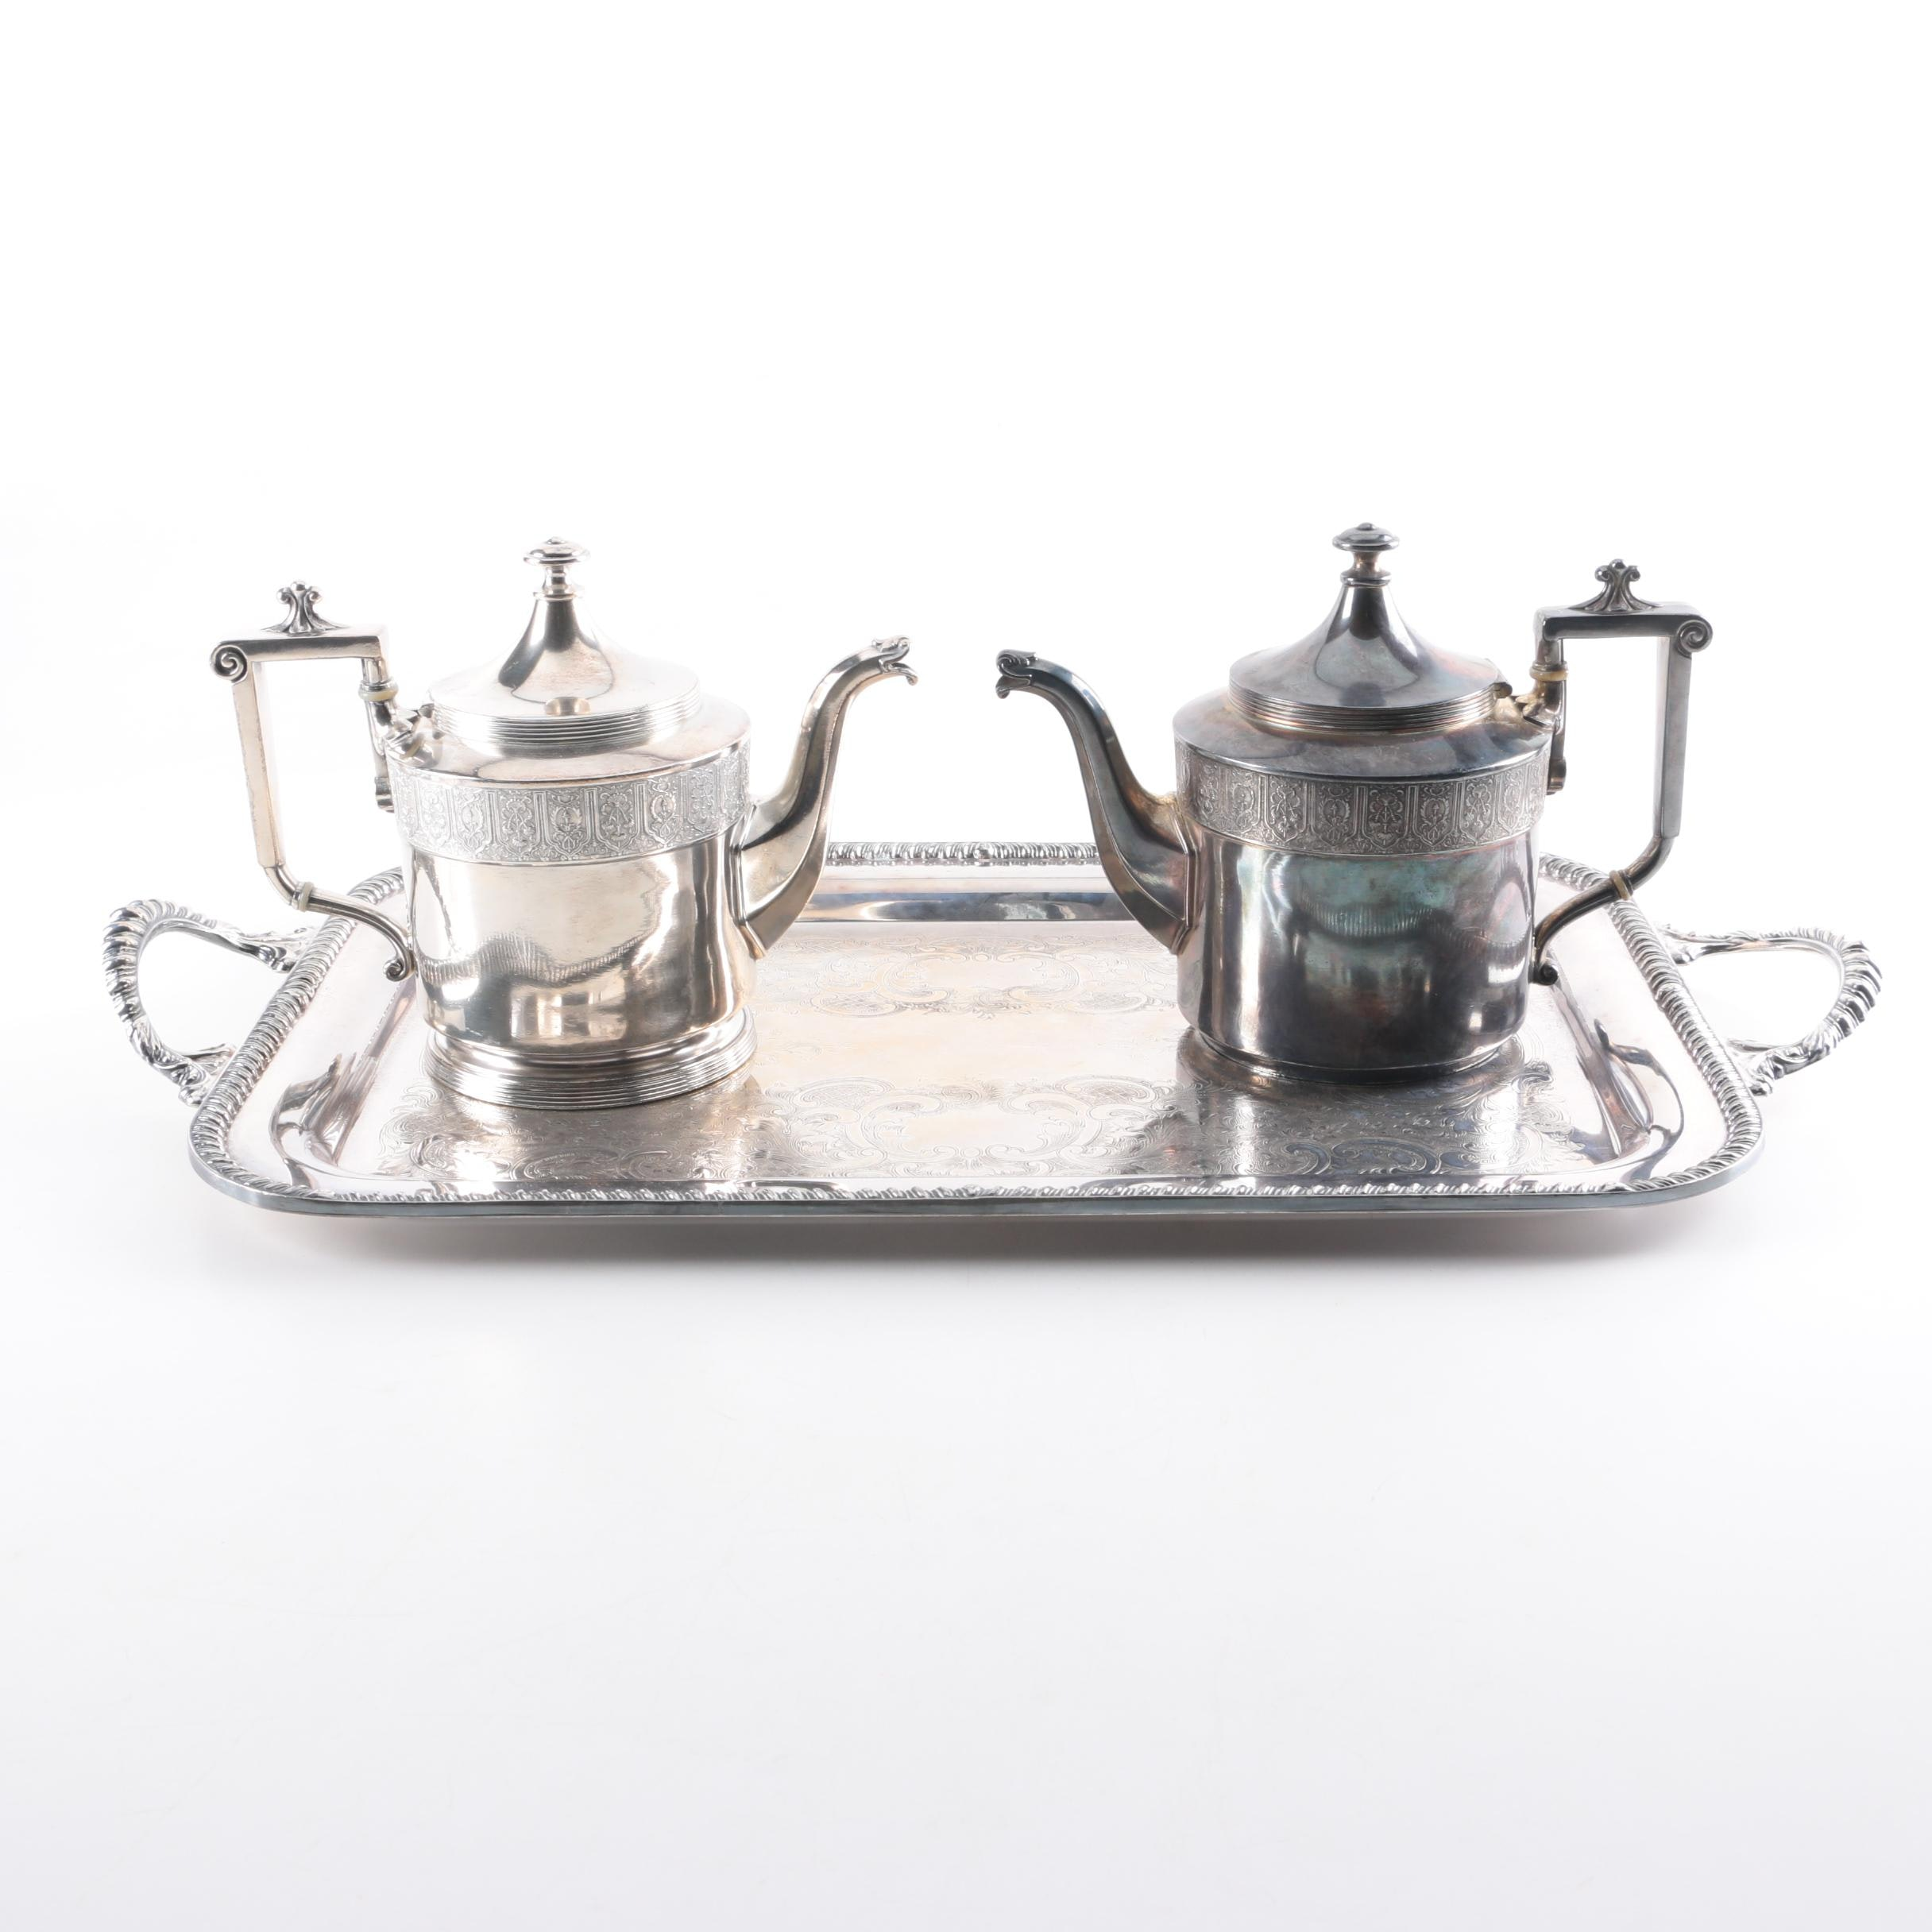 Middletown Silverware Silver Plate Tray and Reed & Barton Silver Plate Teapots